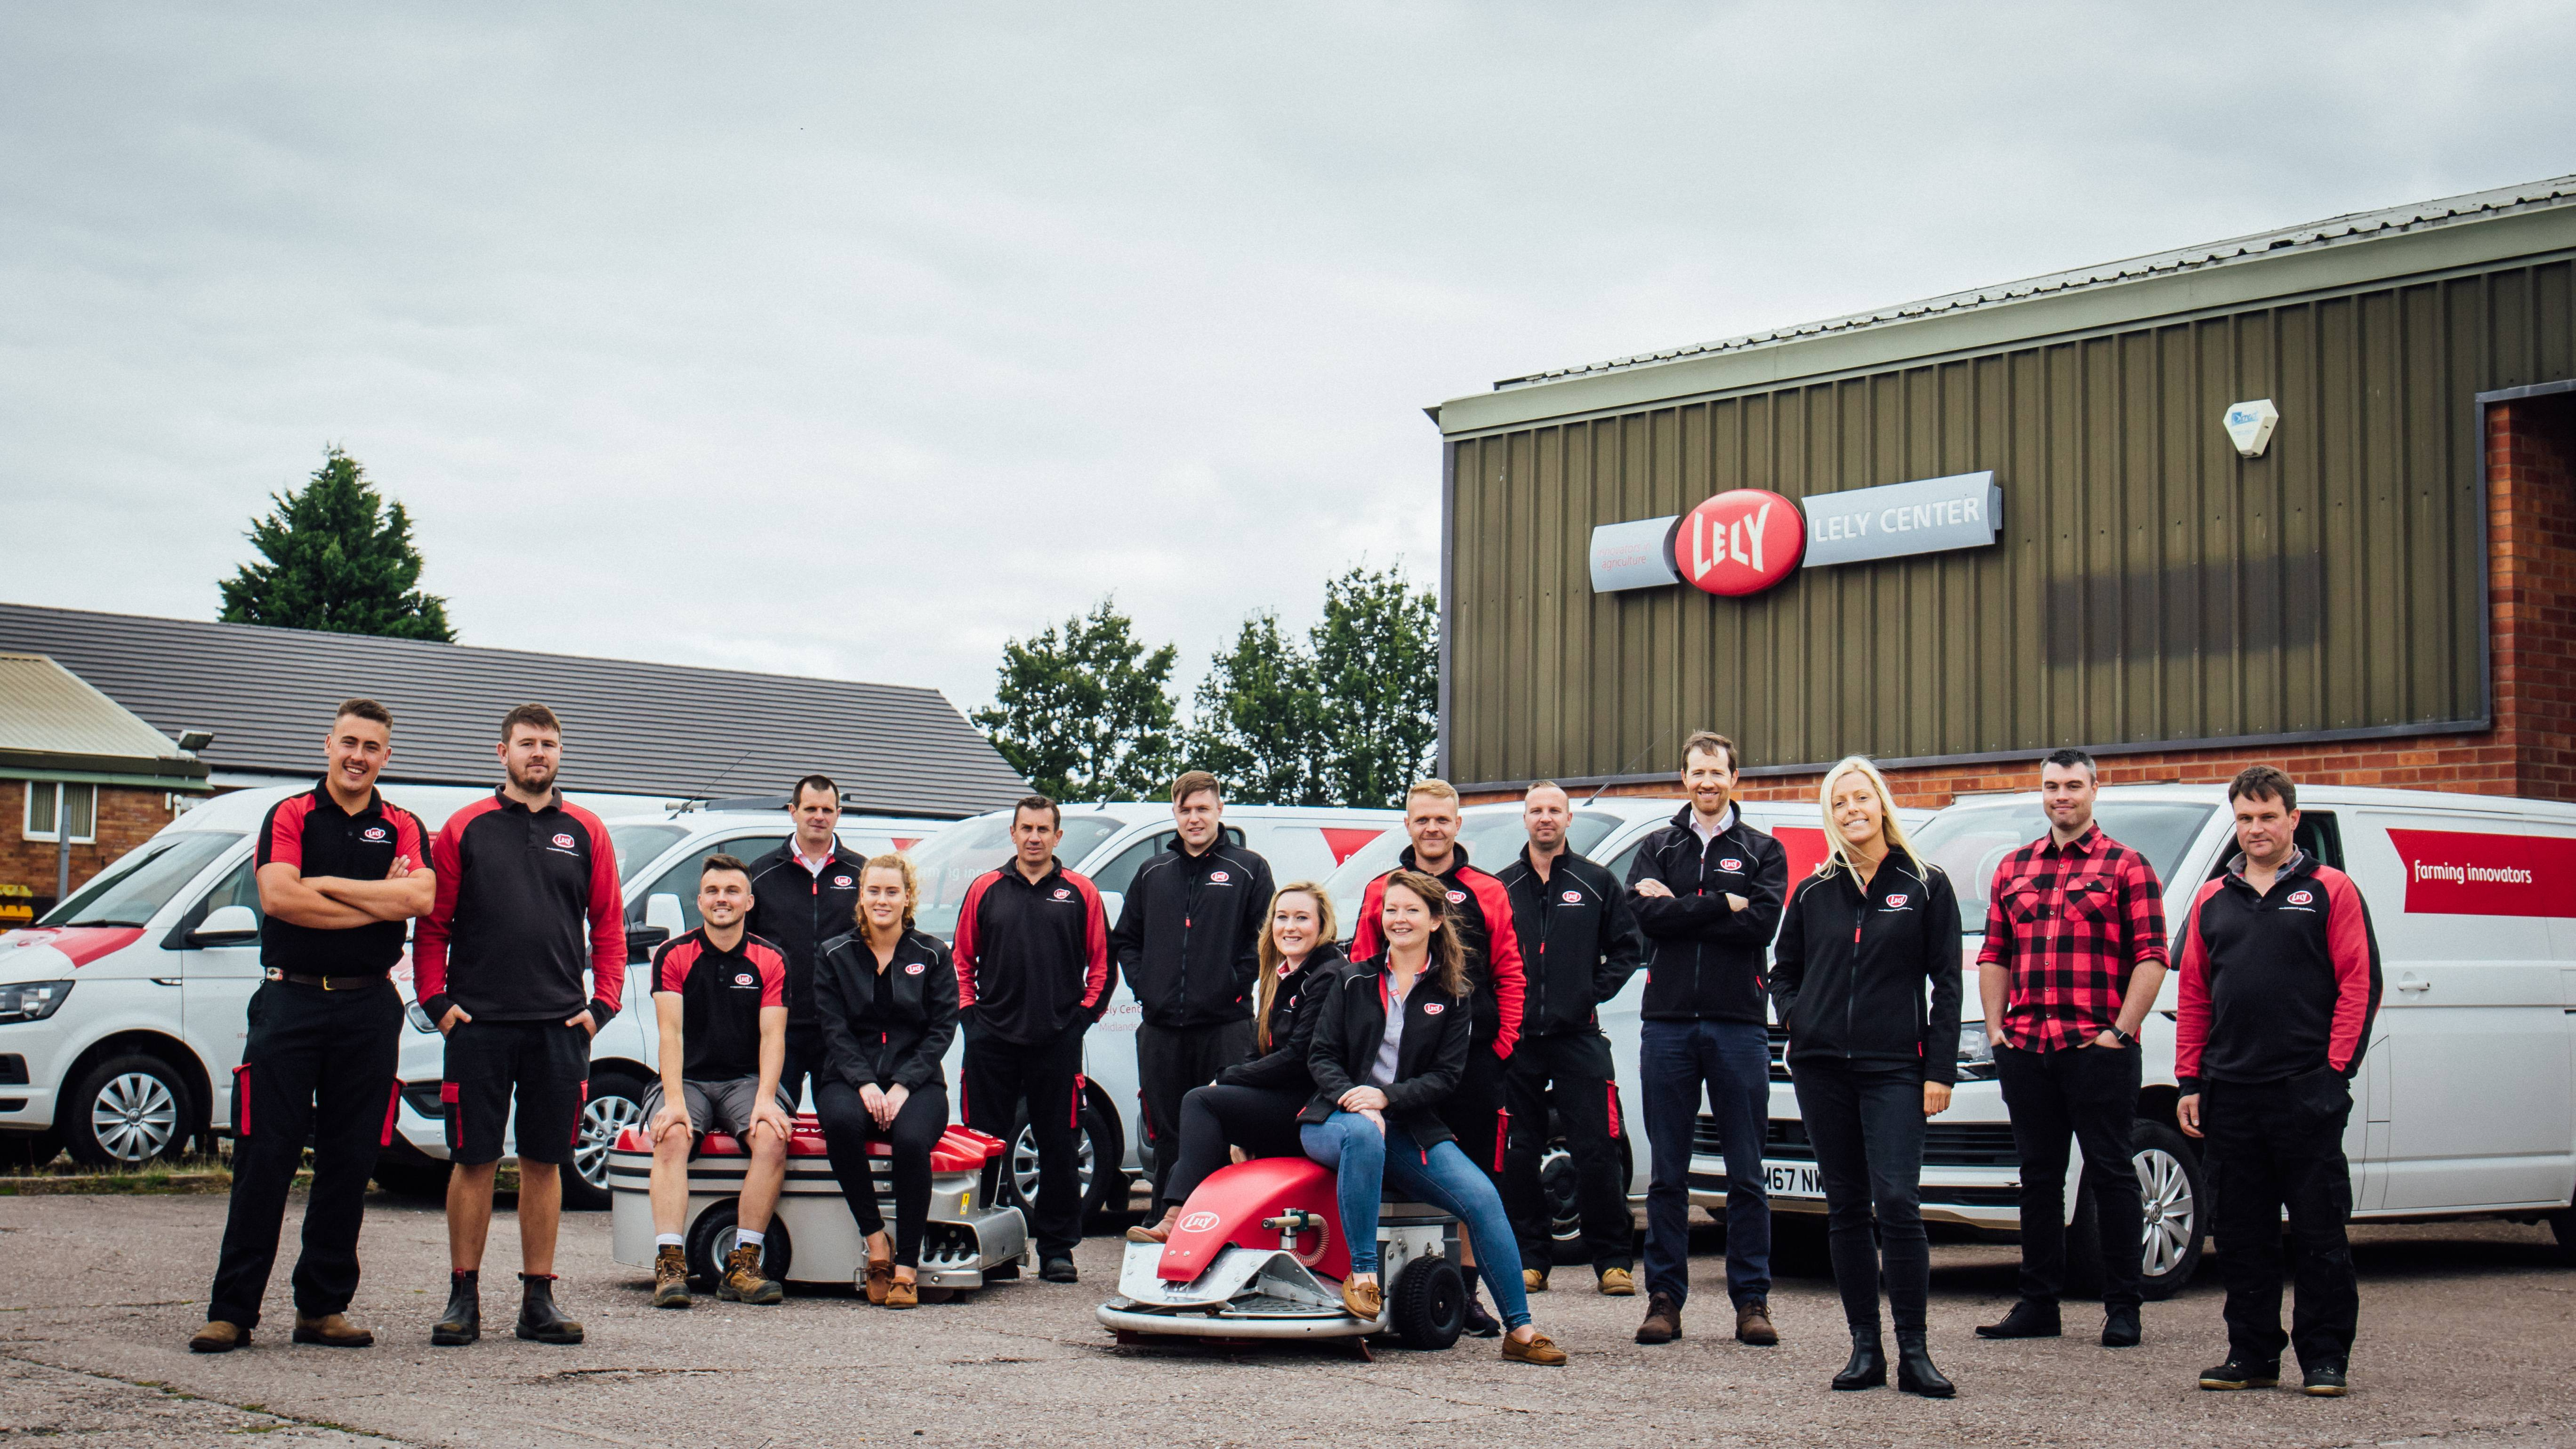 Lely Center Midlands are your local automated milking and feeding experts